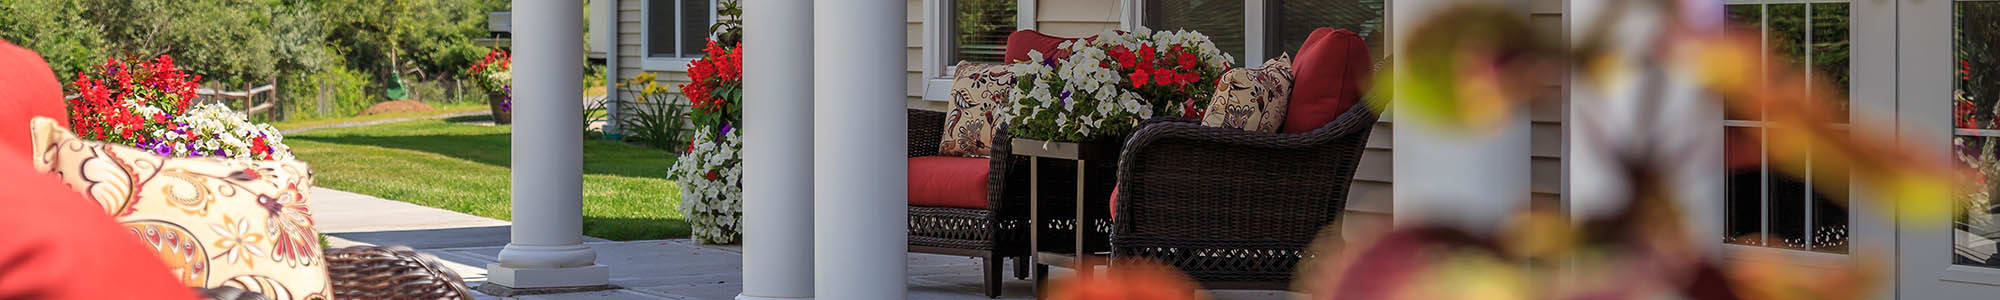 Read our newsletter | All American Assisted Living at Raynham